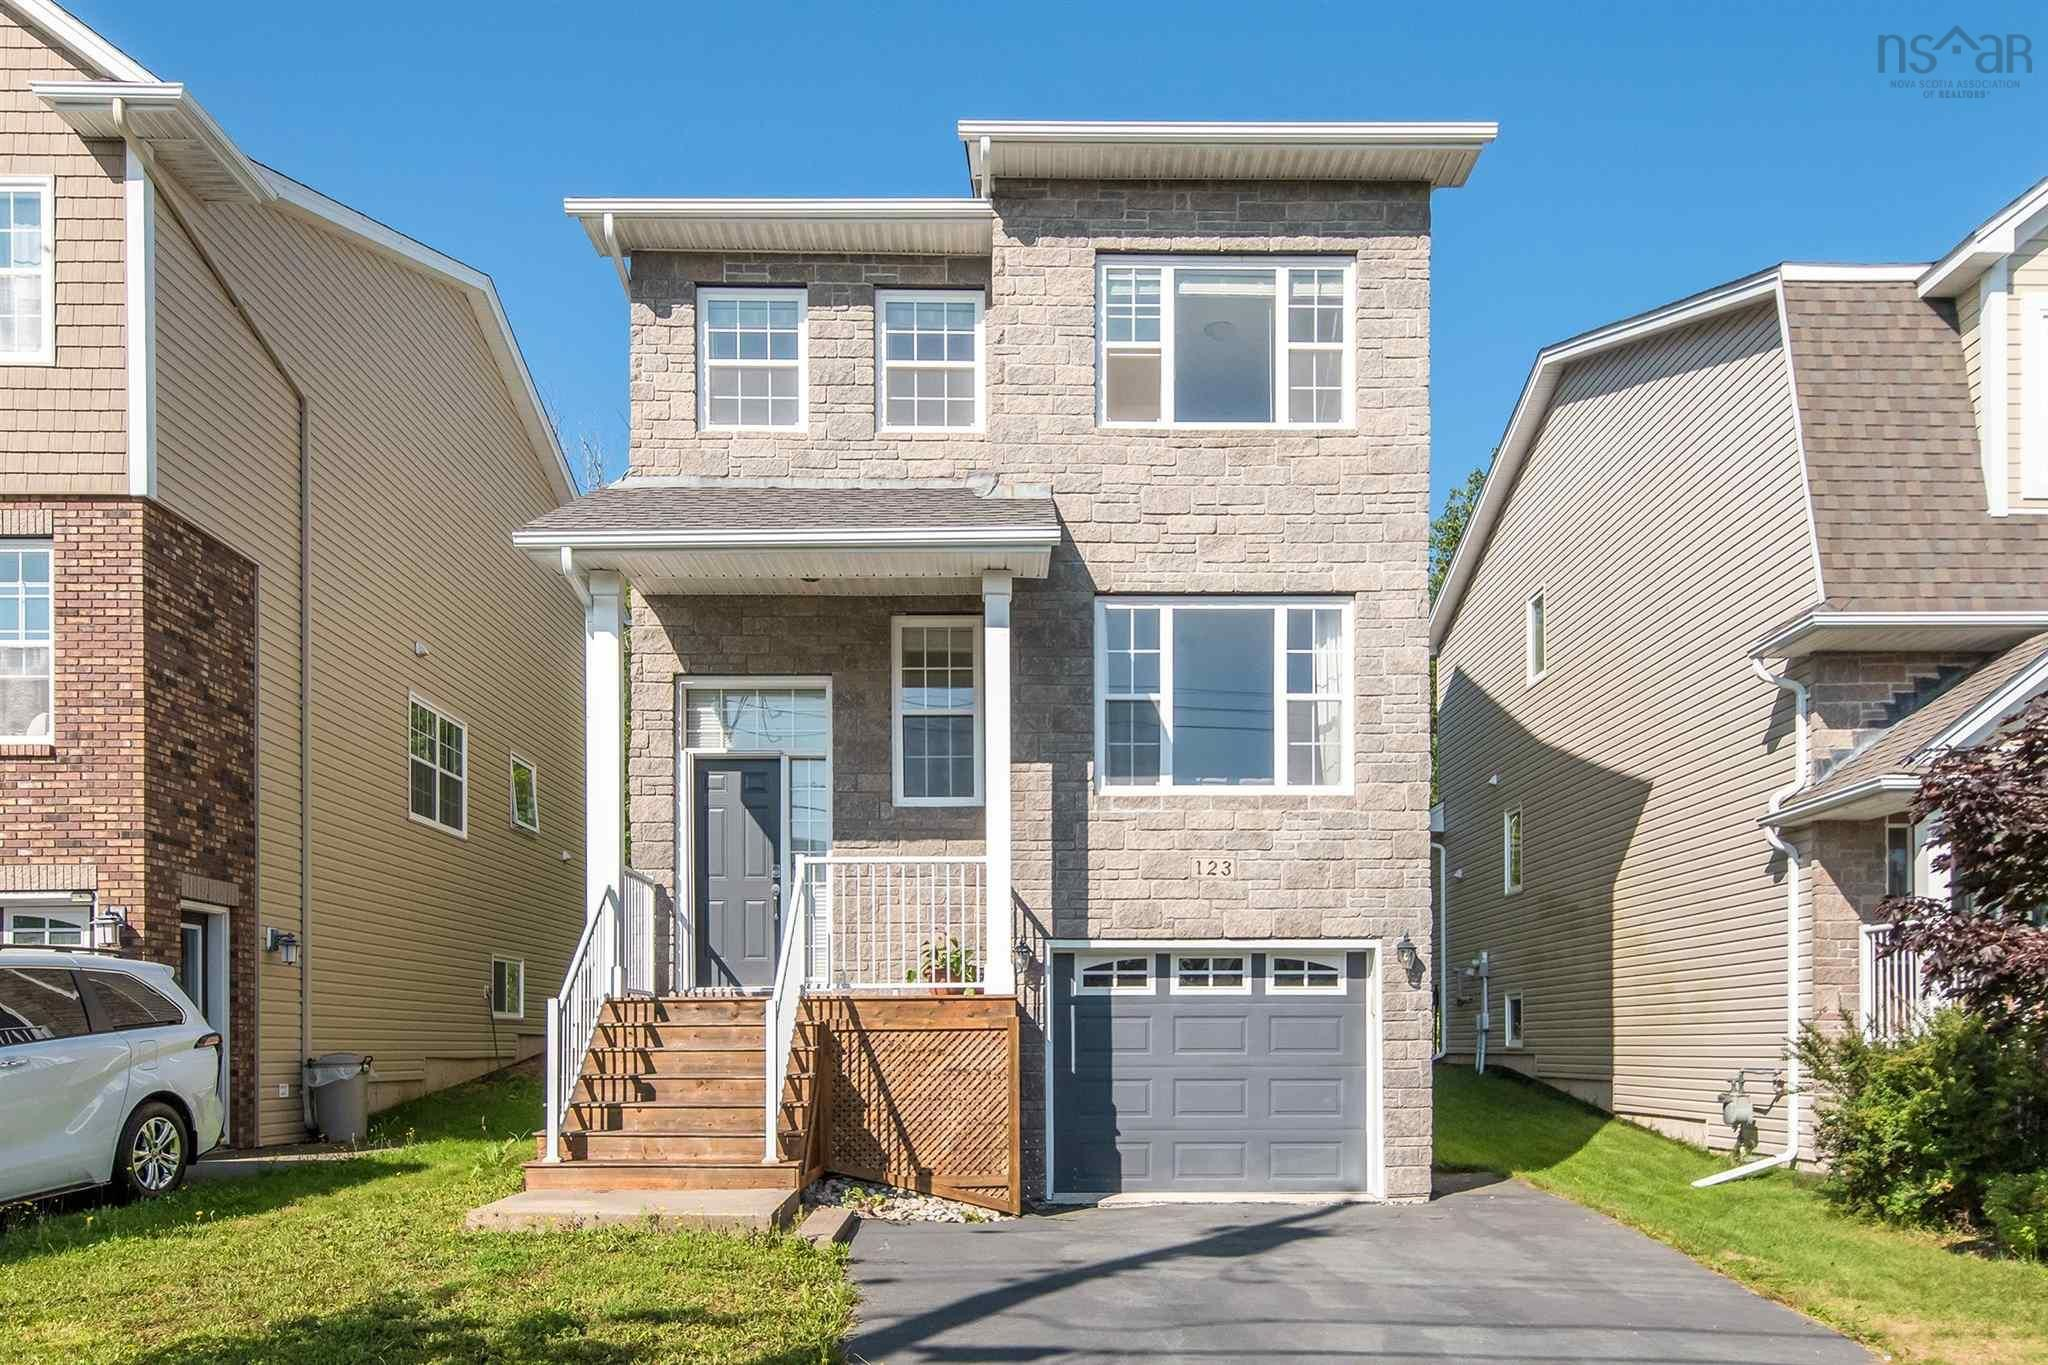 Main Photo: 123 Capstone Crescent in West Bedford: 20-Bedford Residential for sale (Halifax-Dartmouth)  : MLS®# 202123038